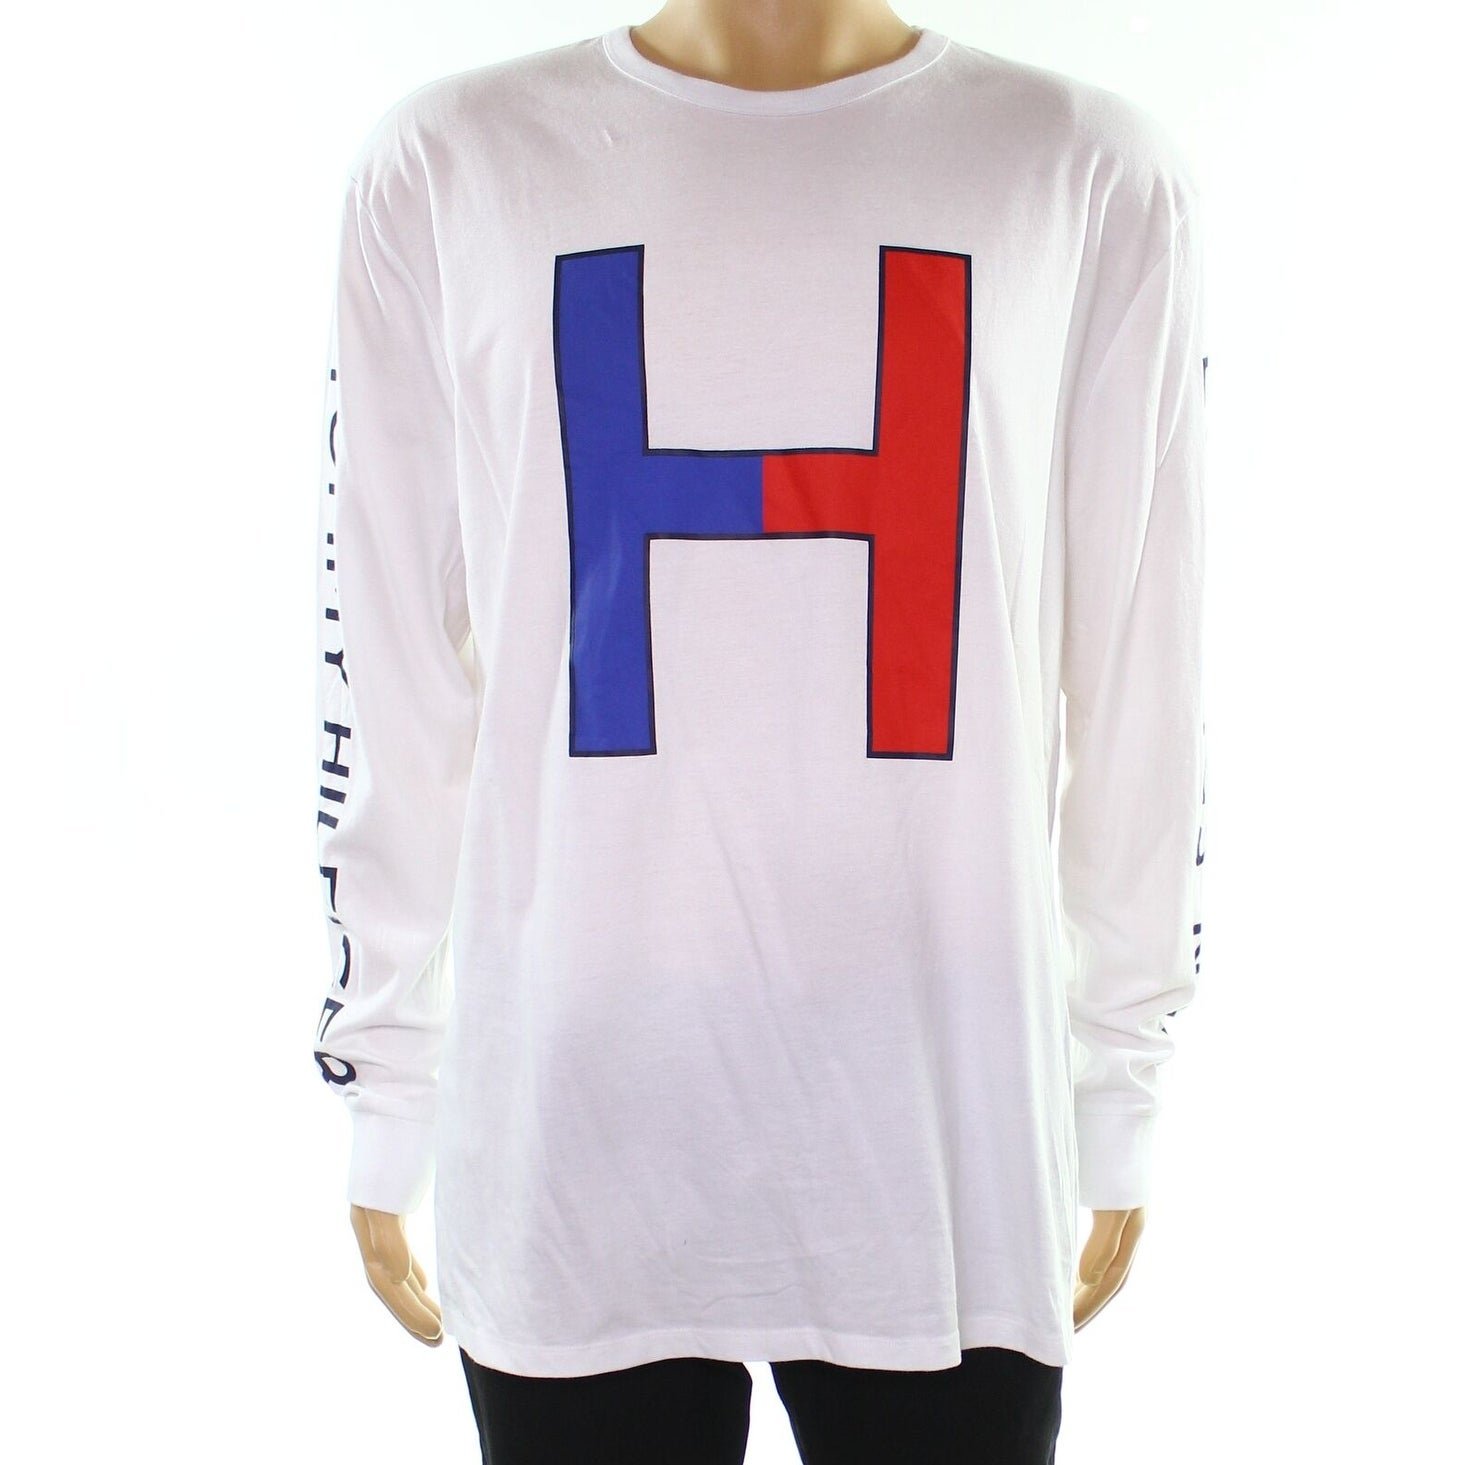 c5d348bb497d Tommy Hilfiger Shirts | Find Great Men's Clothing Deals Shopping at  Overstock